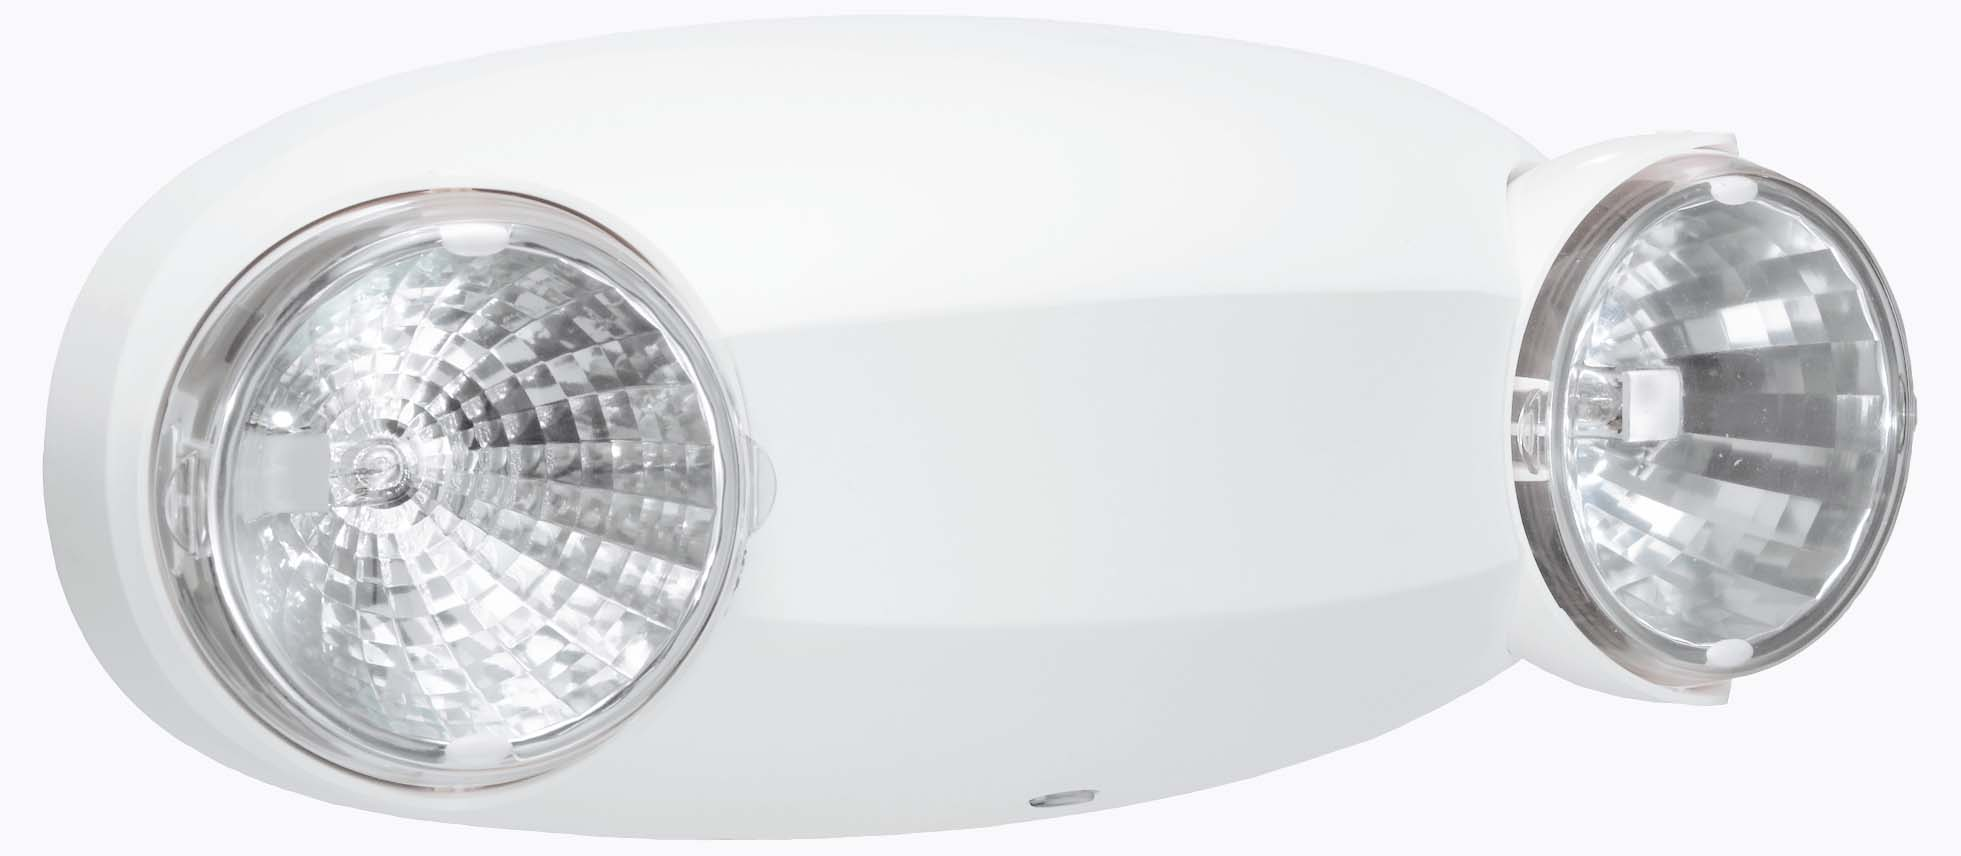 Recalled Quantum Elm2 Light Fixture